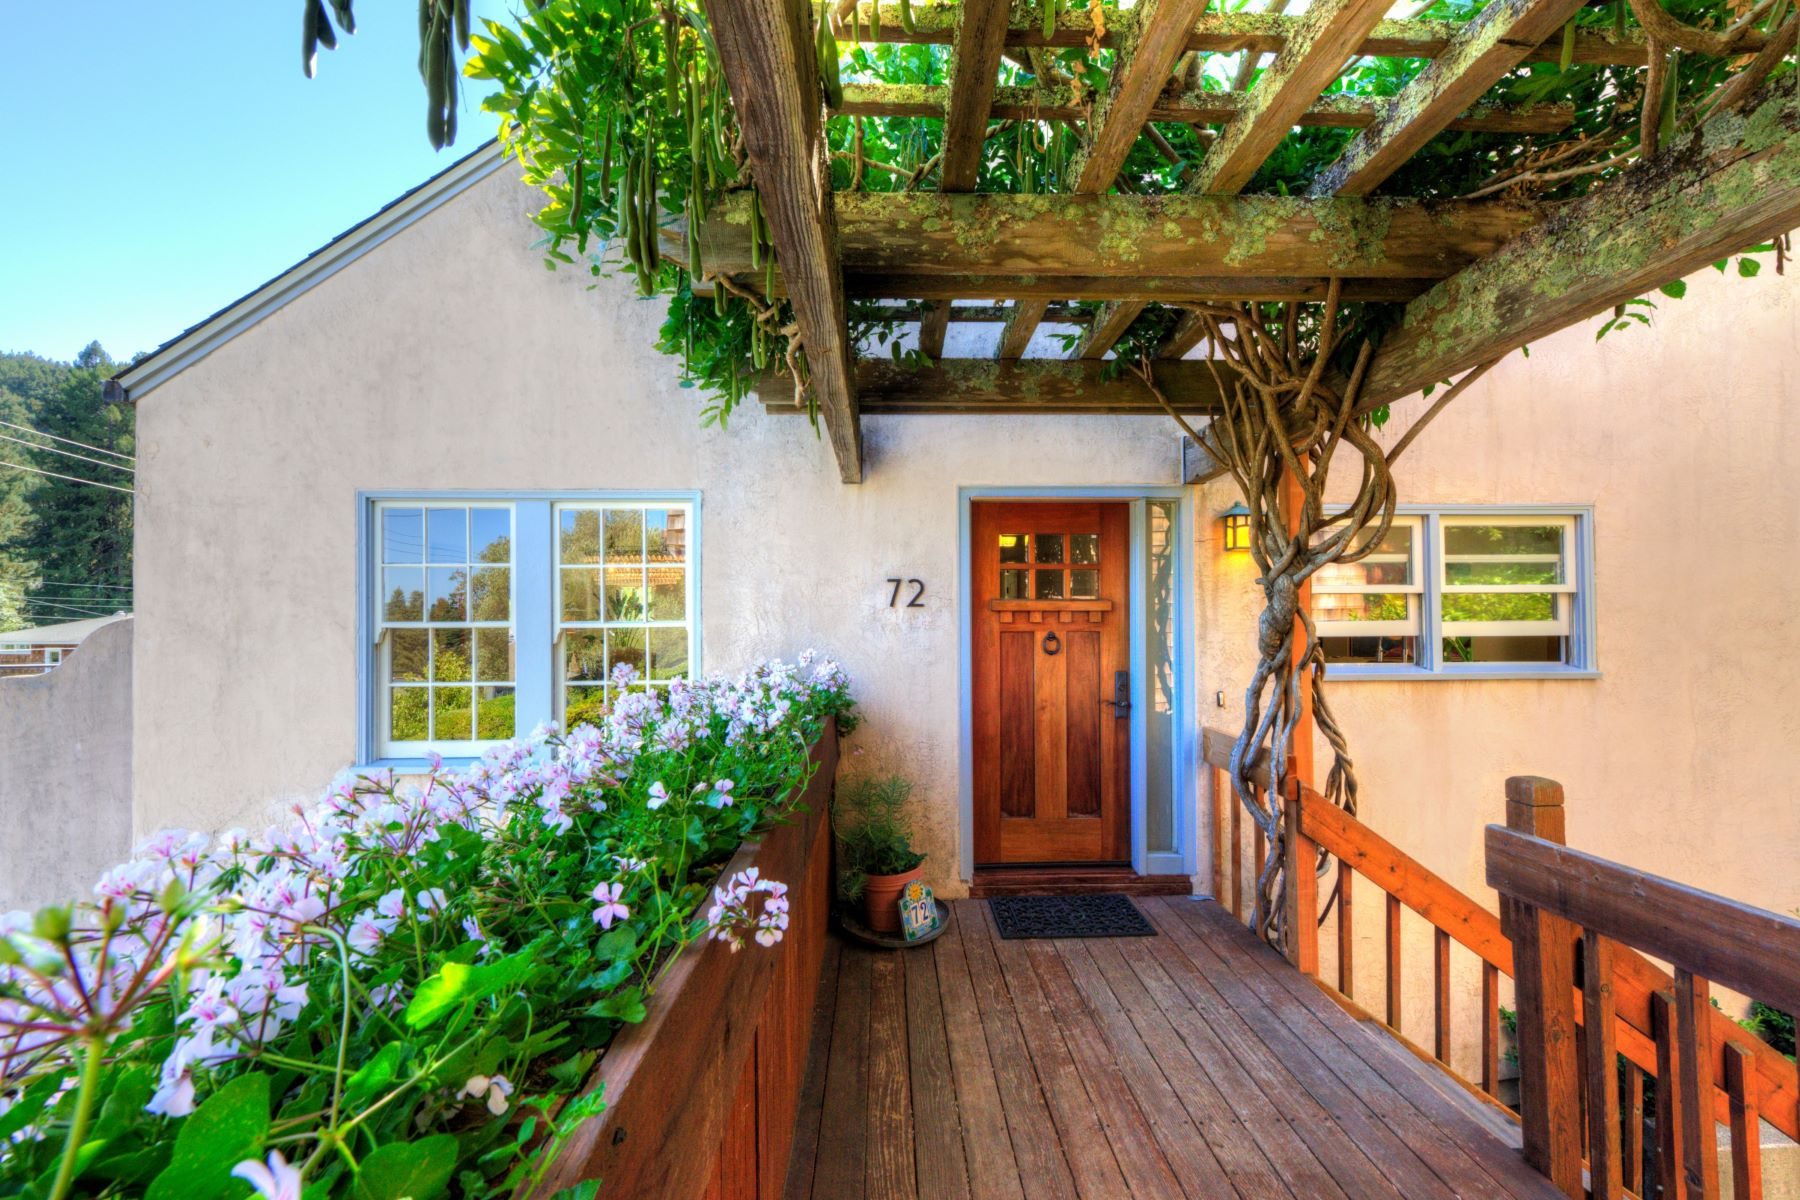 Single Family Home for Sale at Live in Downtown Mill Valley 72 Lovell Ave Mill Valley, California 94941 United States